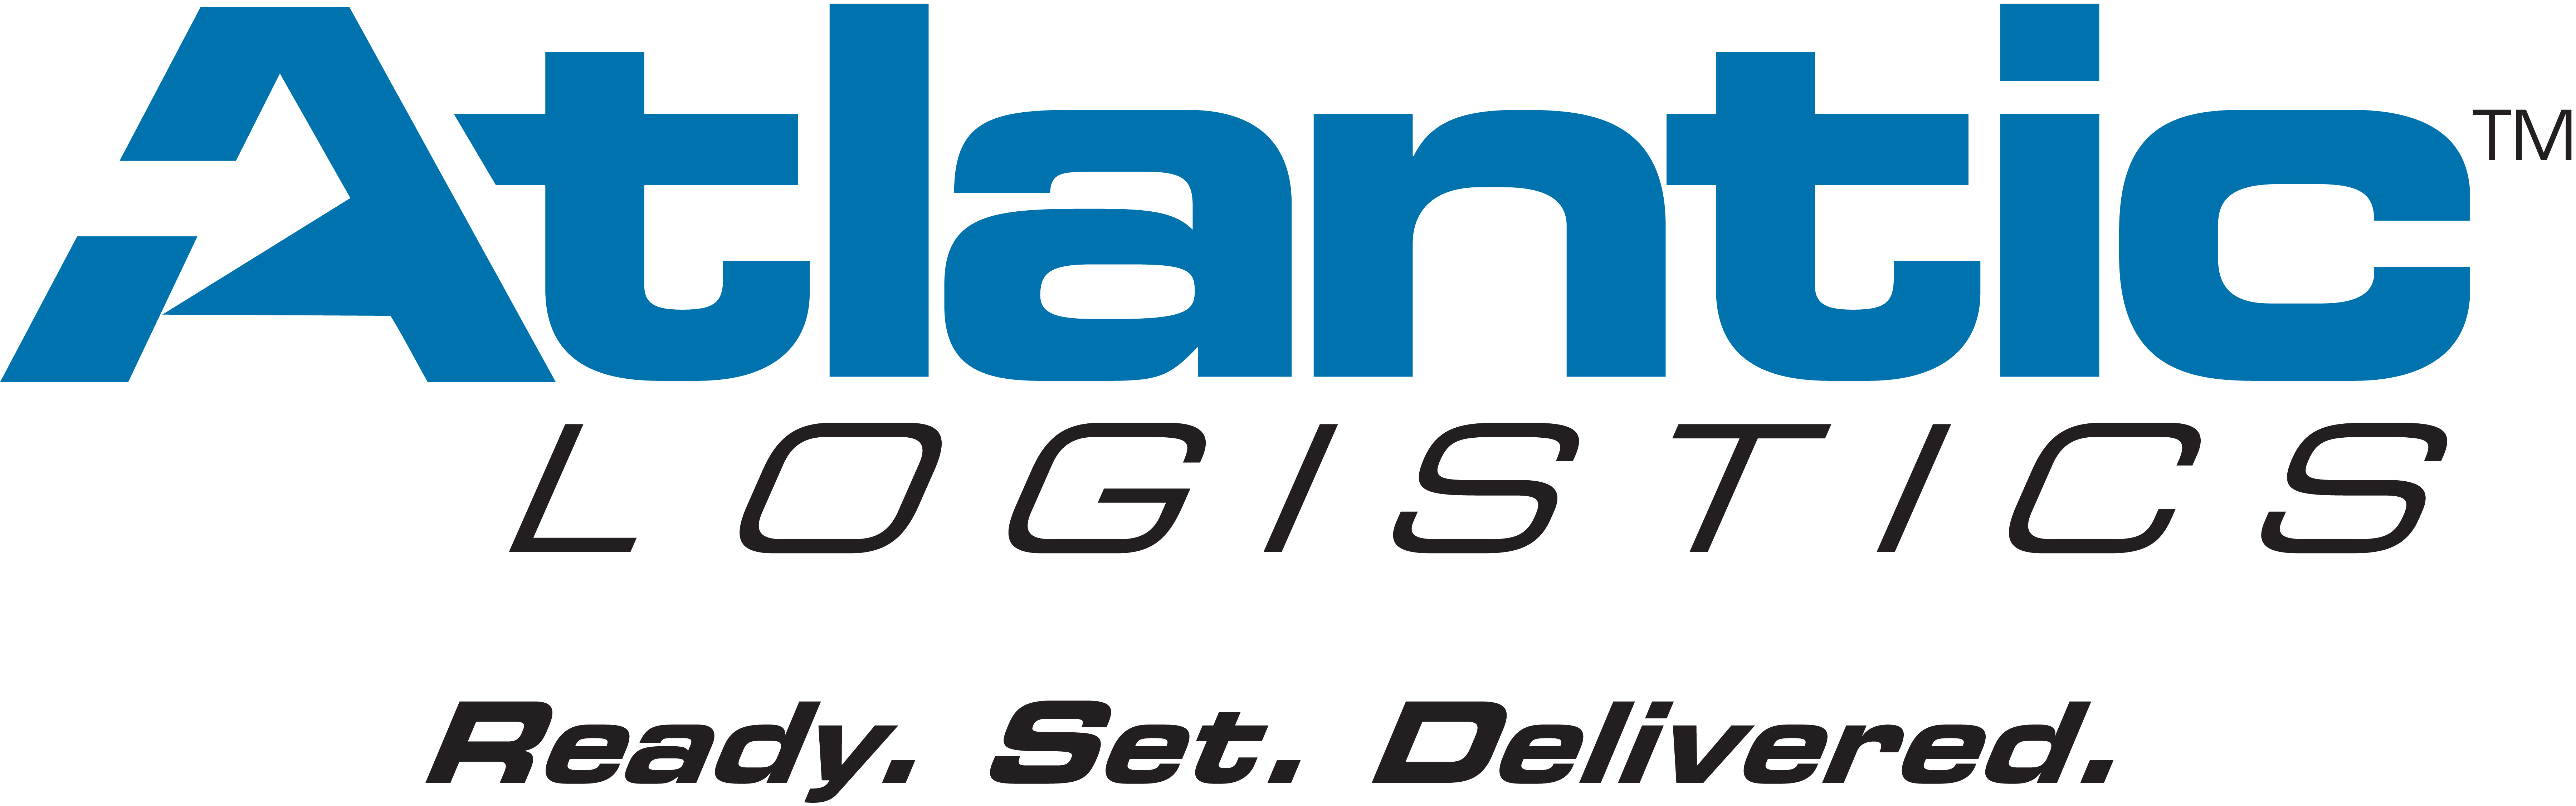 Atlantic Logistics Moves 200,000 Loads